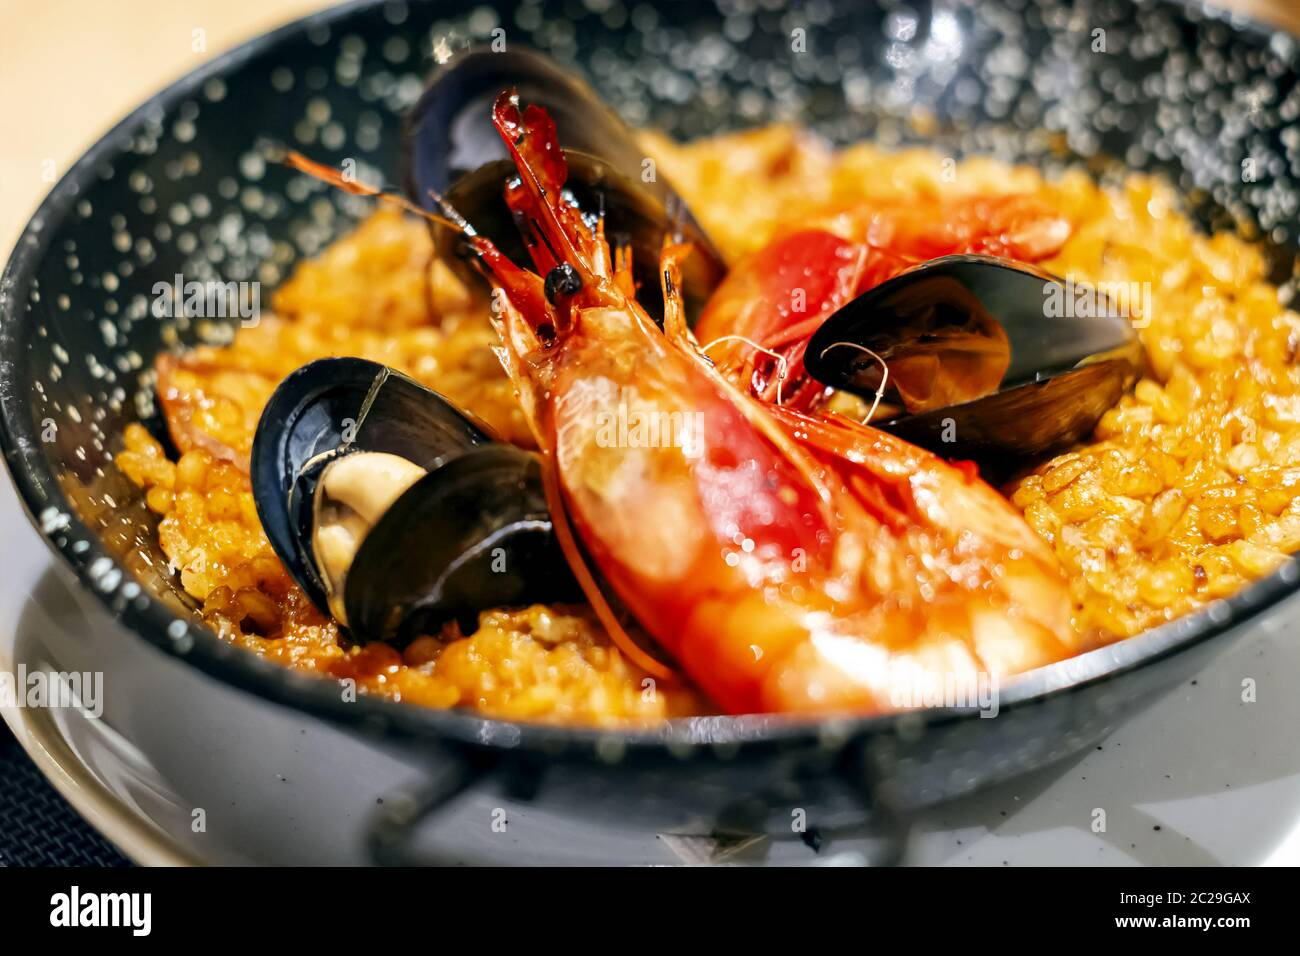 Paella with mariscos, a typical dish of traditional Spanish cuisine based on seafood and rice Stock Photo